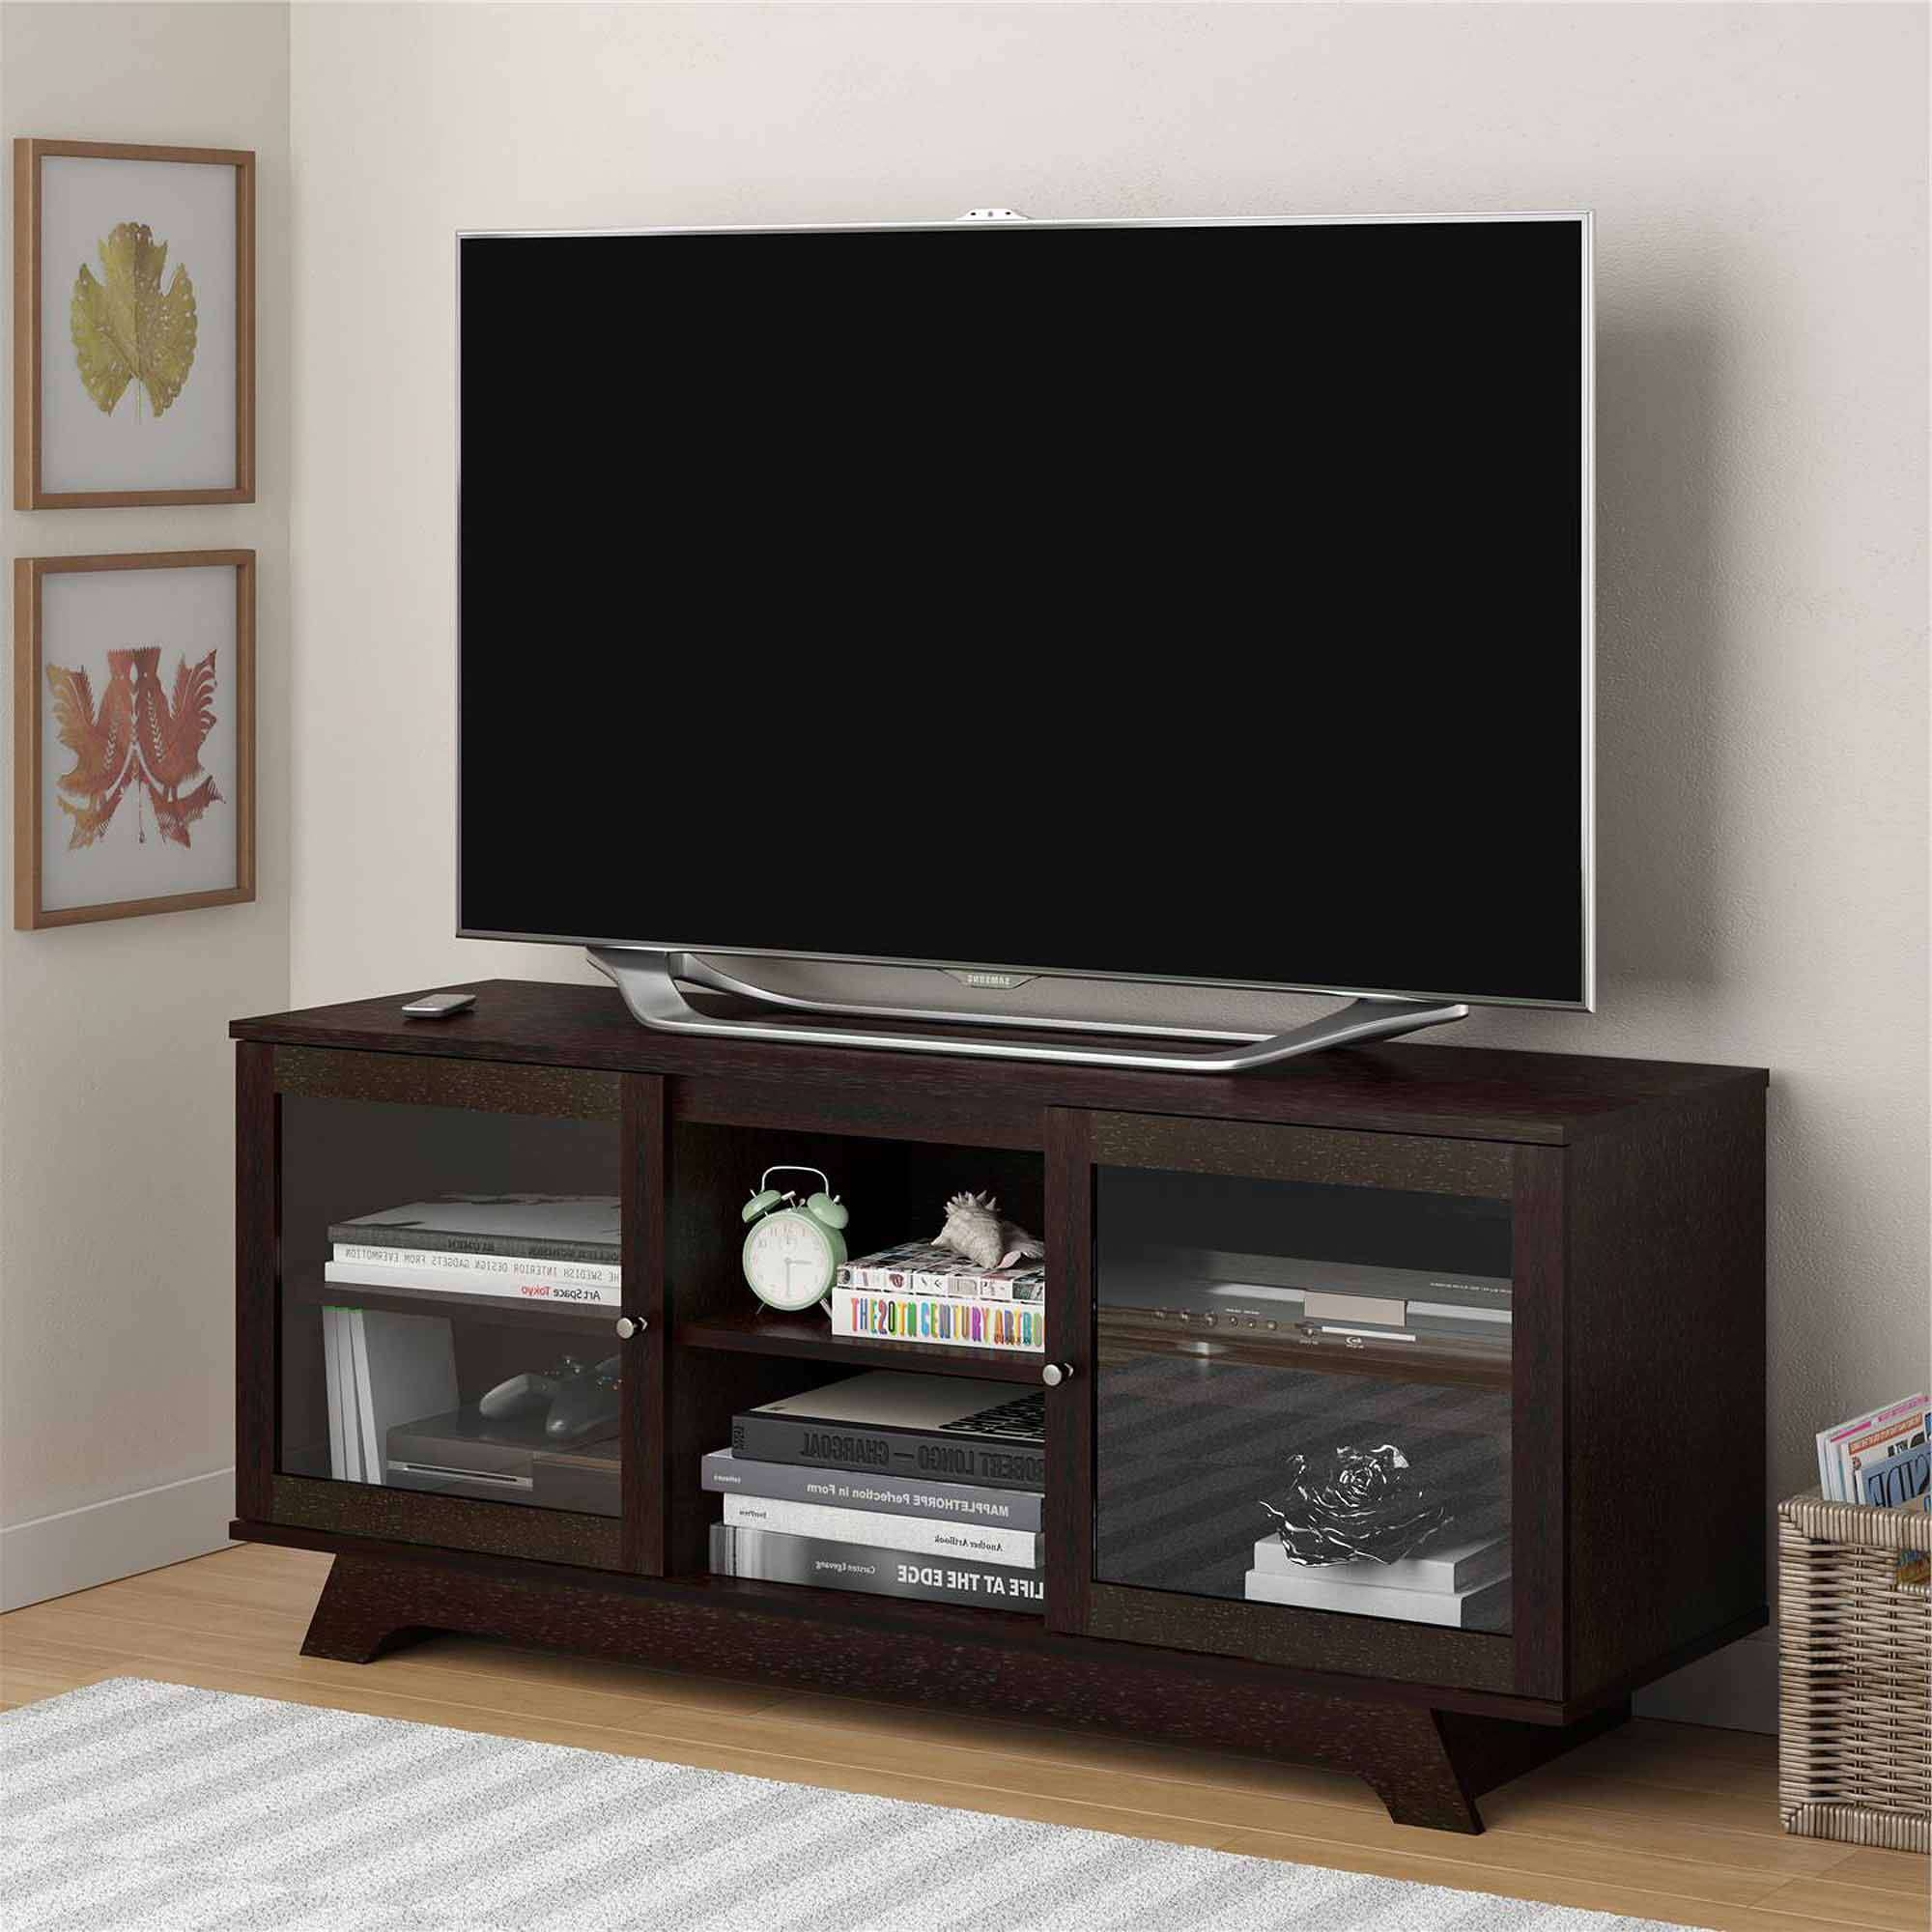 Tv Stand For 50 Inch Tv Modern Tv Stand Buy Tv Stand Small For Long Tv Stands (View 13 of 15)